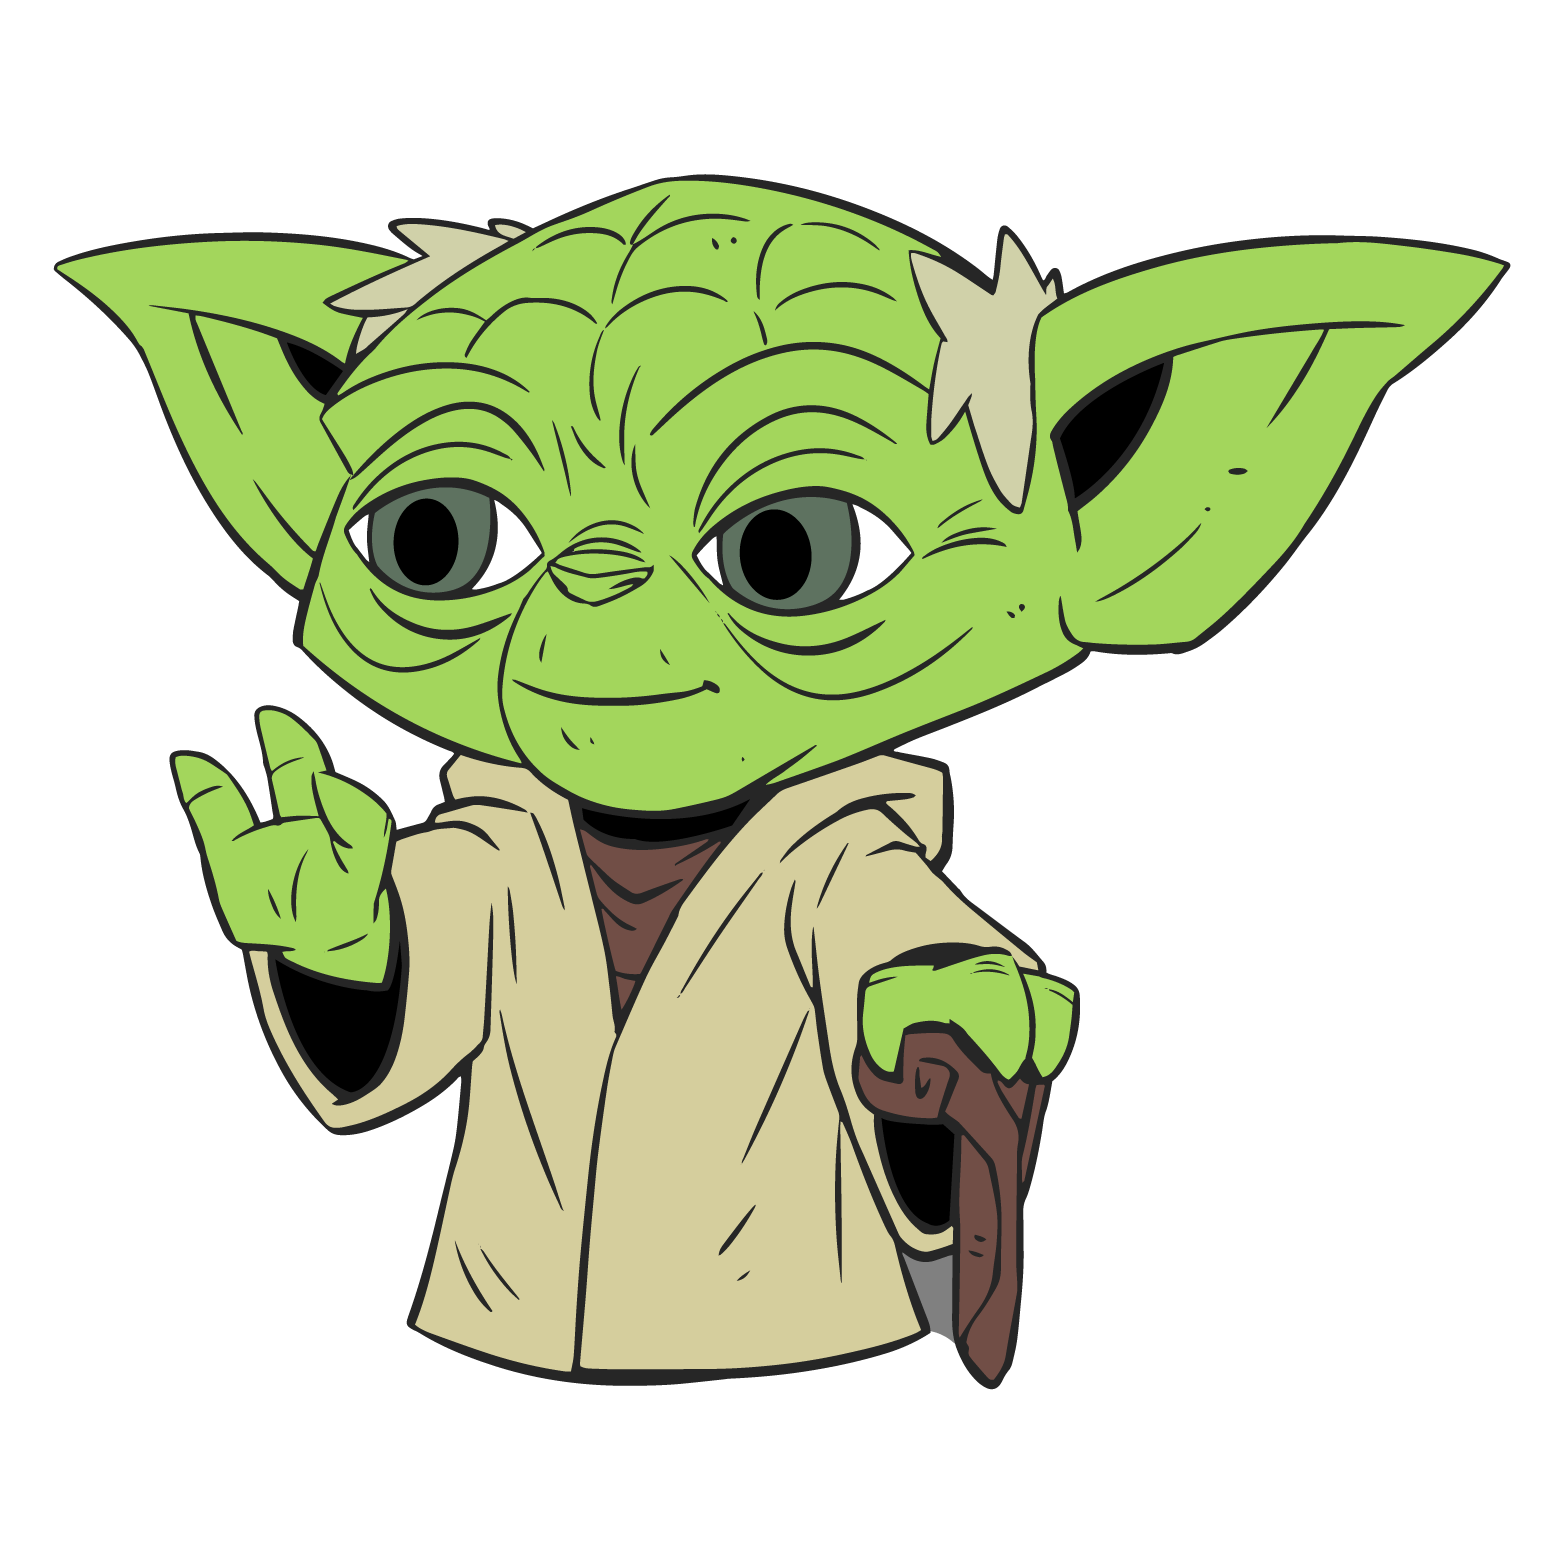 clipart of yoda at getdrawings com free for personal use clipart rh getdrawings com yoda clip art free yoga clip art funny images